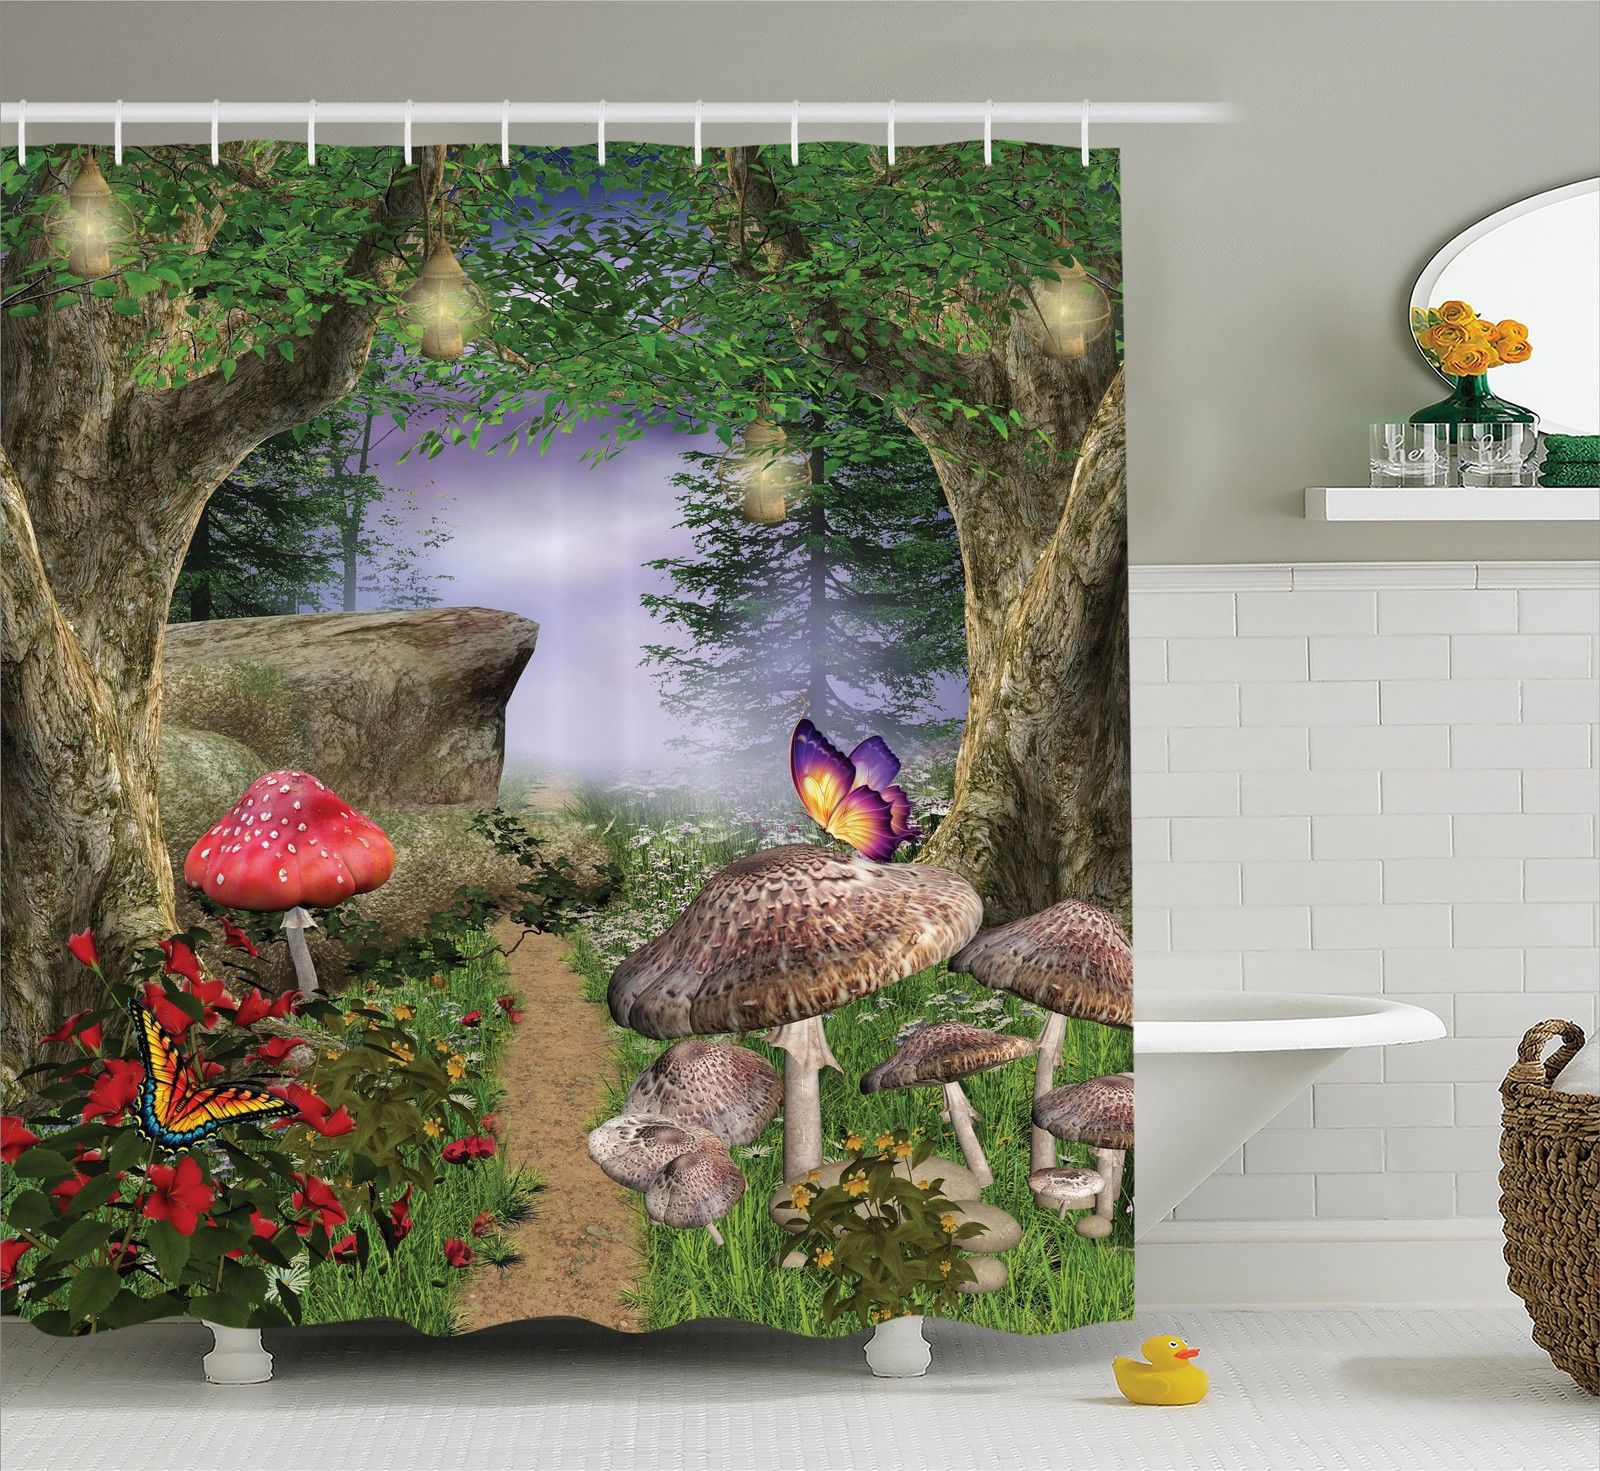 Mushroom Decor Shower Curtain Set, Enchanted Nature Pathway Butterflies  Fairytale Landscape Rocks Street, Bathroom